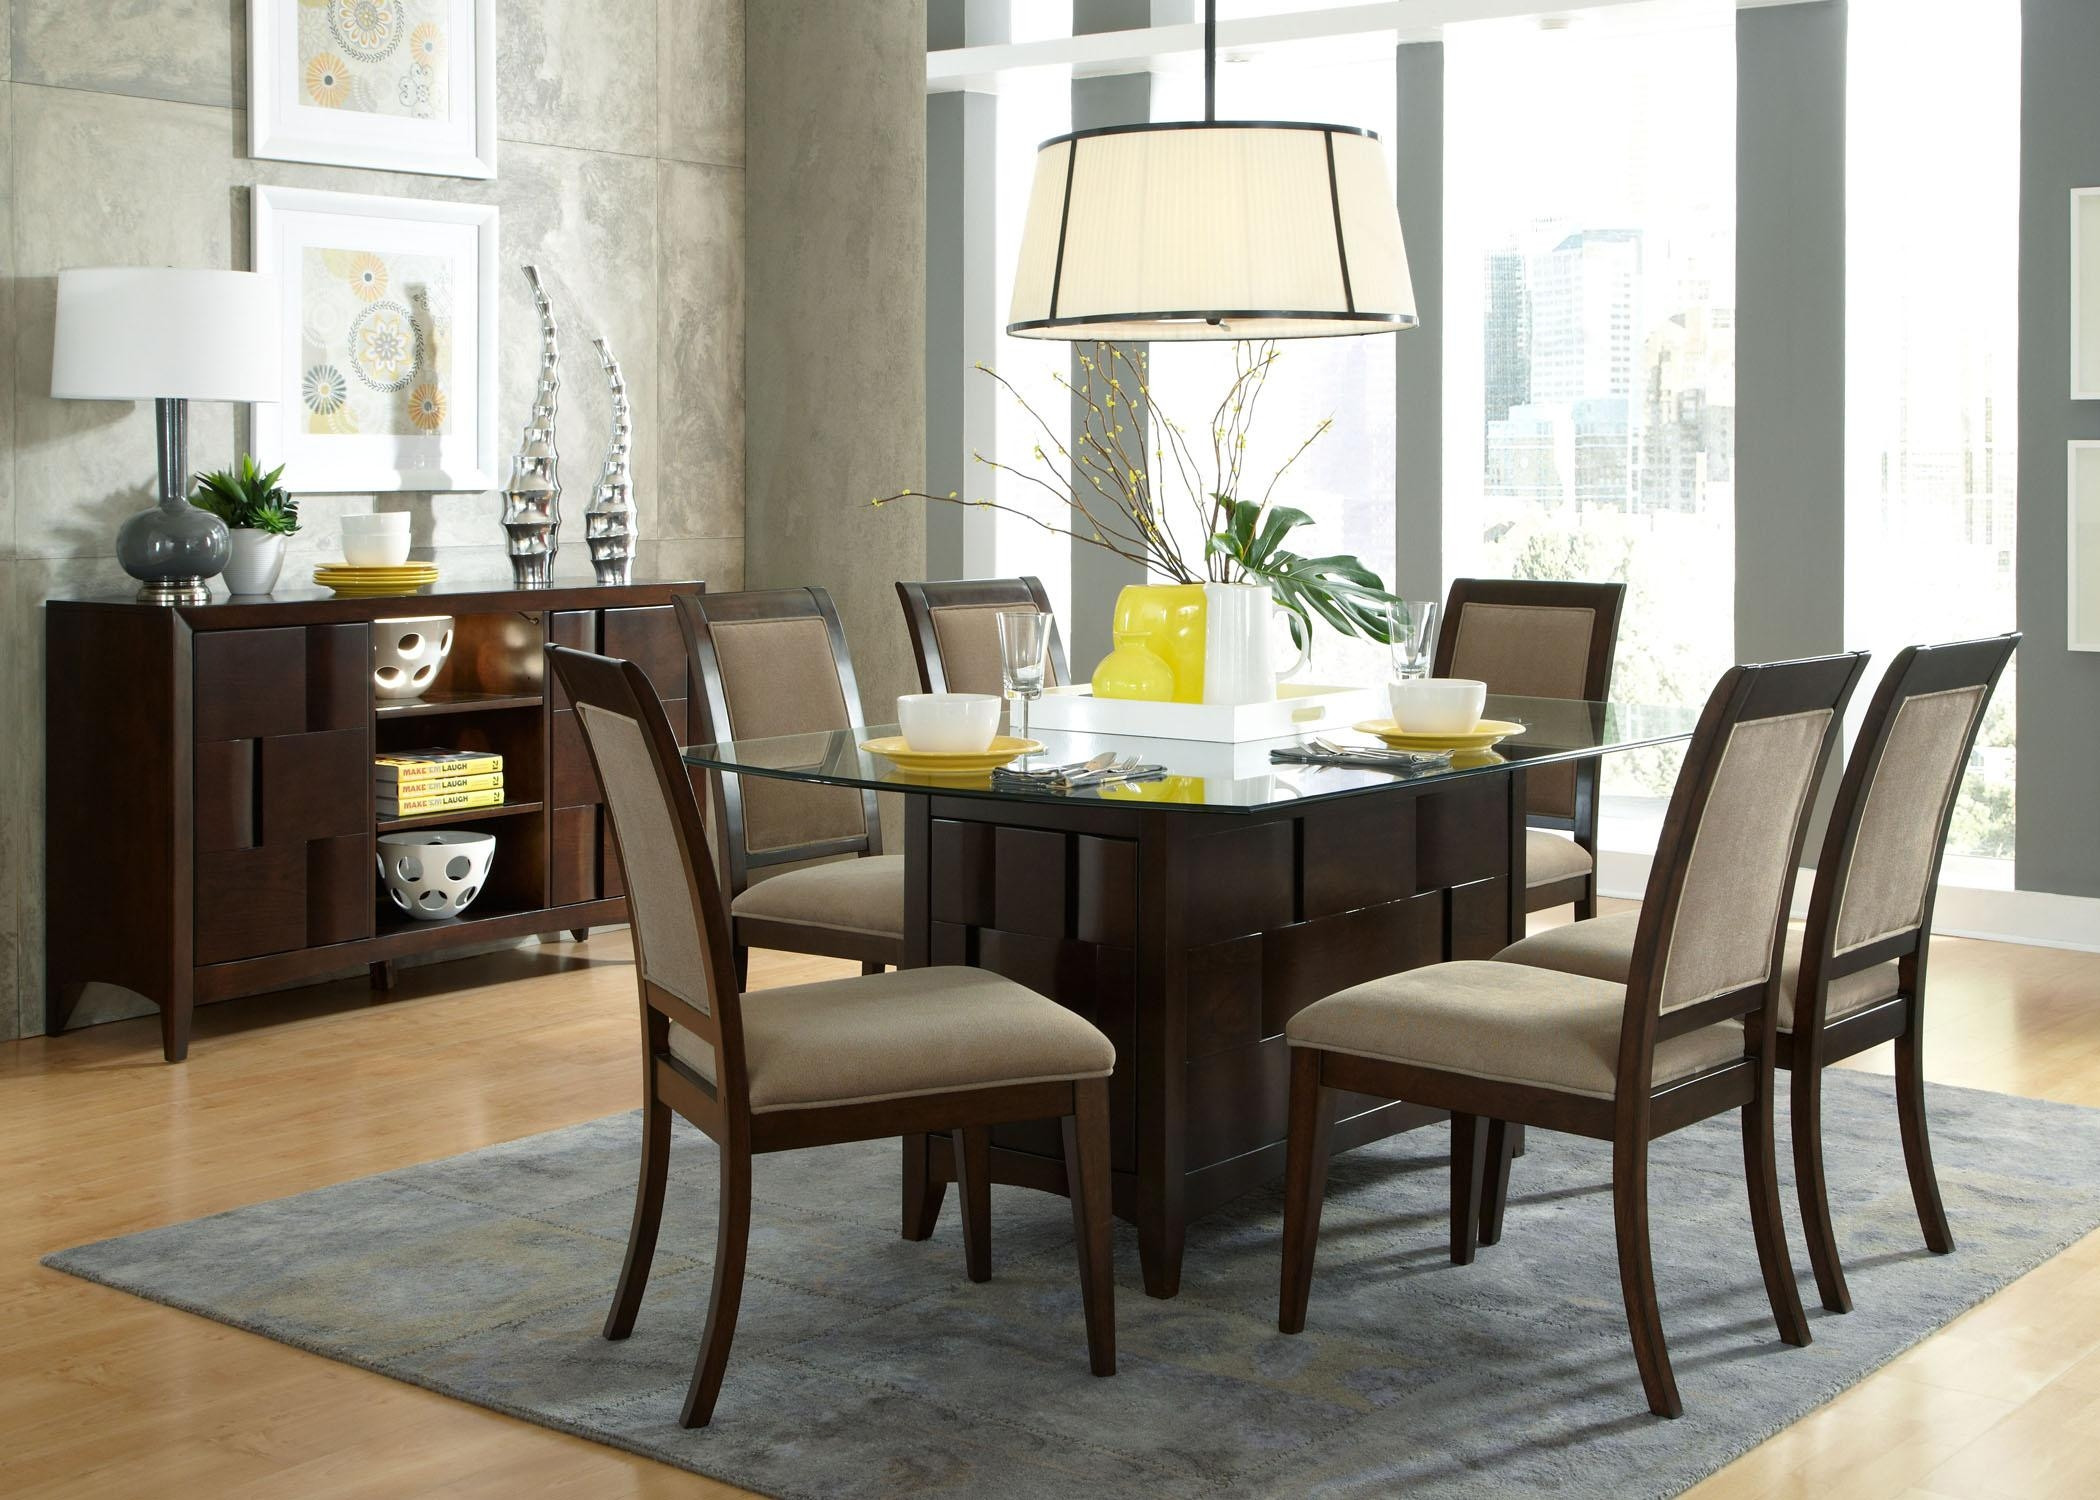 Best ideas about Glass Dining Room Tables . Save or Pin Glass Top Dining Tables With Wood Base Dining Room aprar Now.